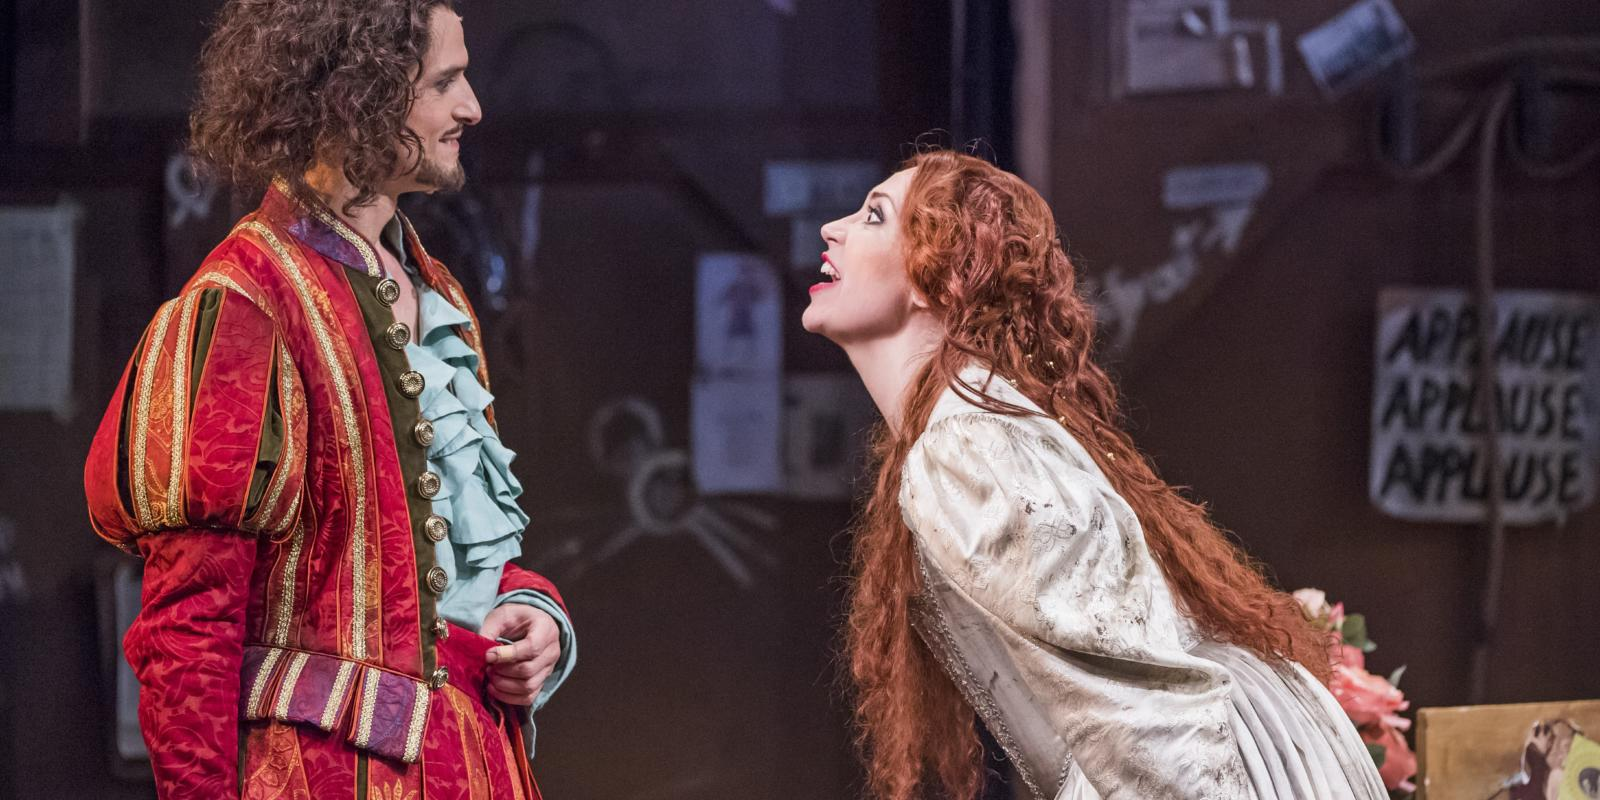 Quirijn de Lang as Petruchio and Stephanie Corley as Kate